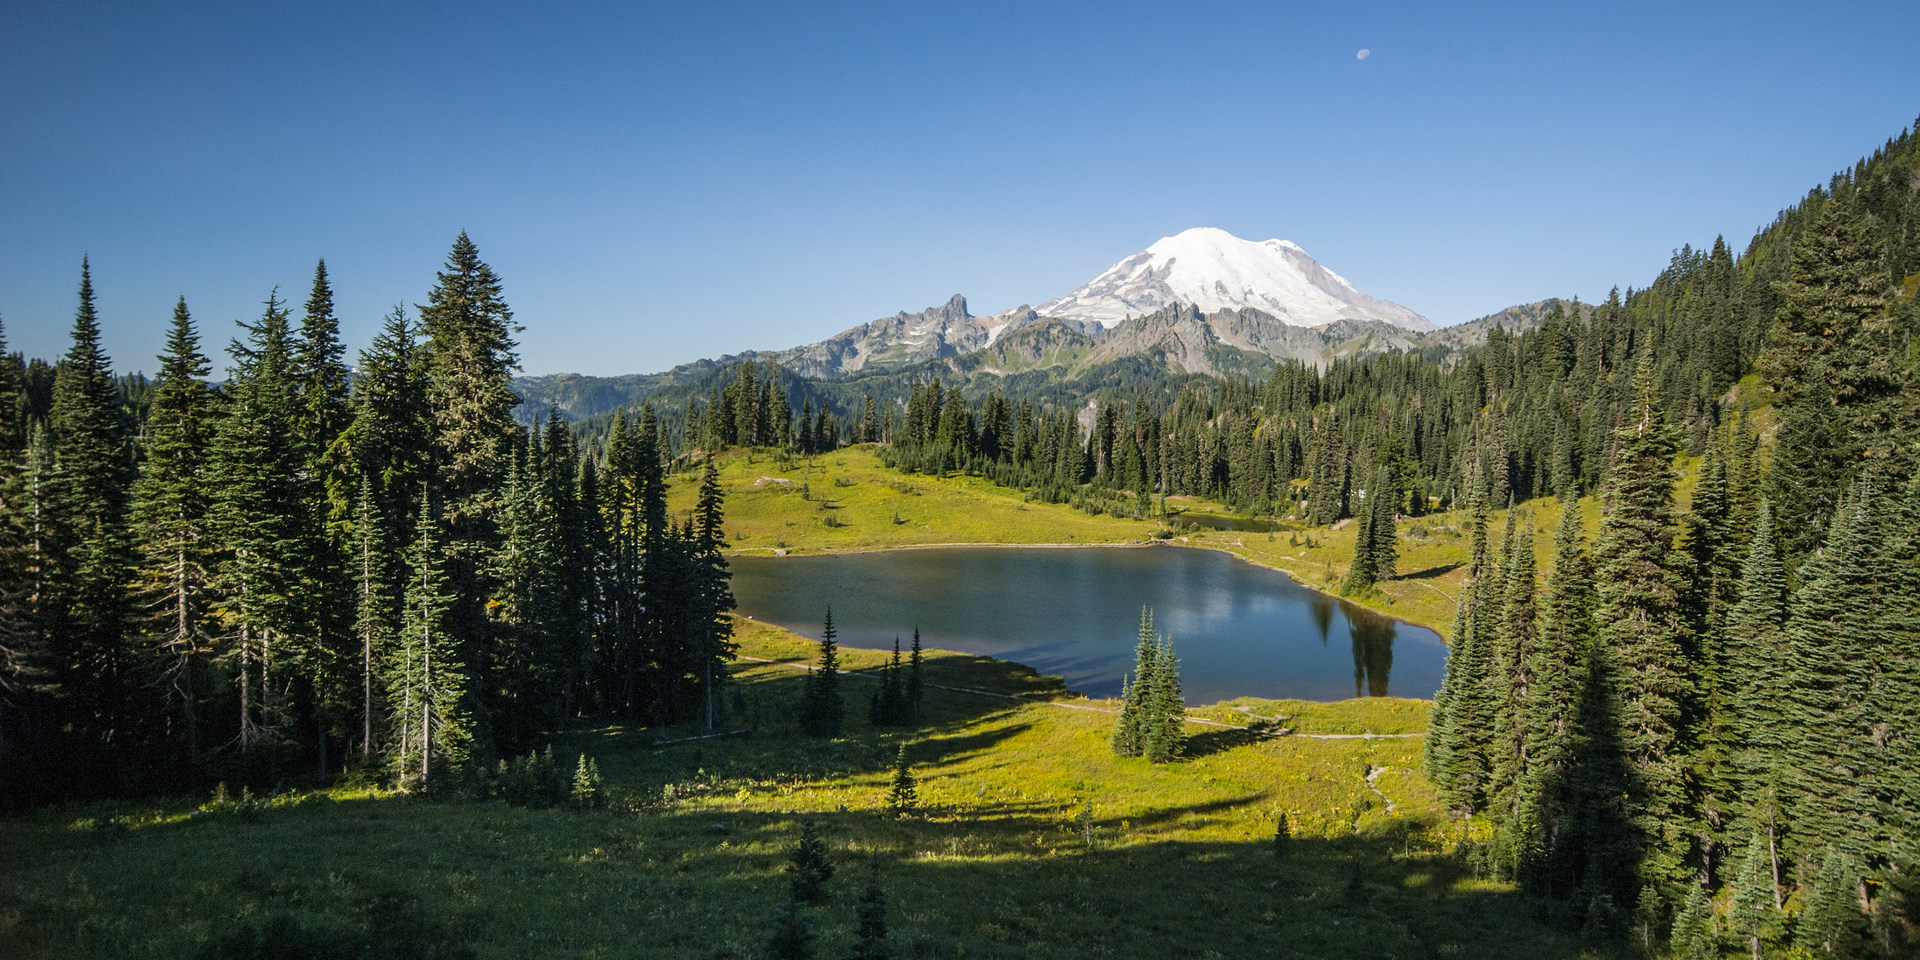 mount rainier milf personals Ranking of the top 6 things to do in mount rainier national park travelers favorites include # 1 paradise, #2 sunrise and more.